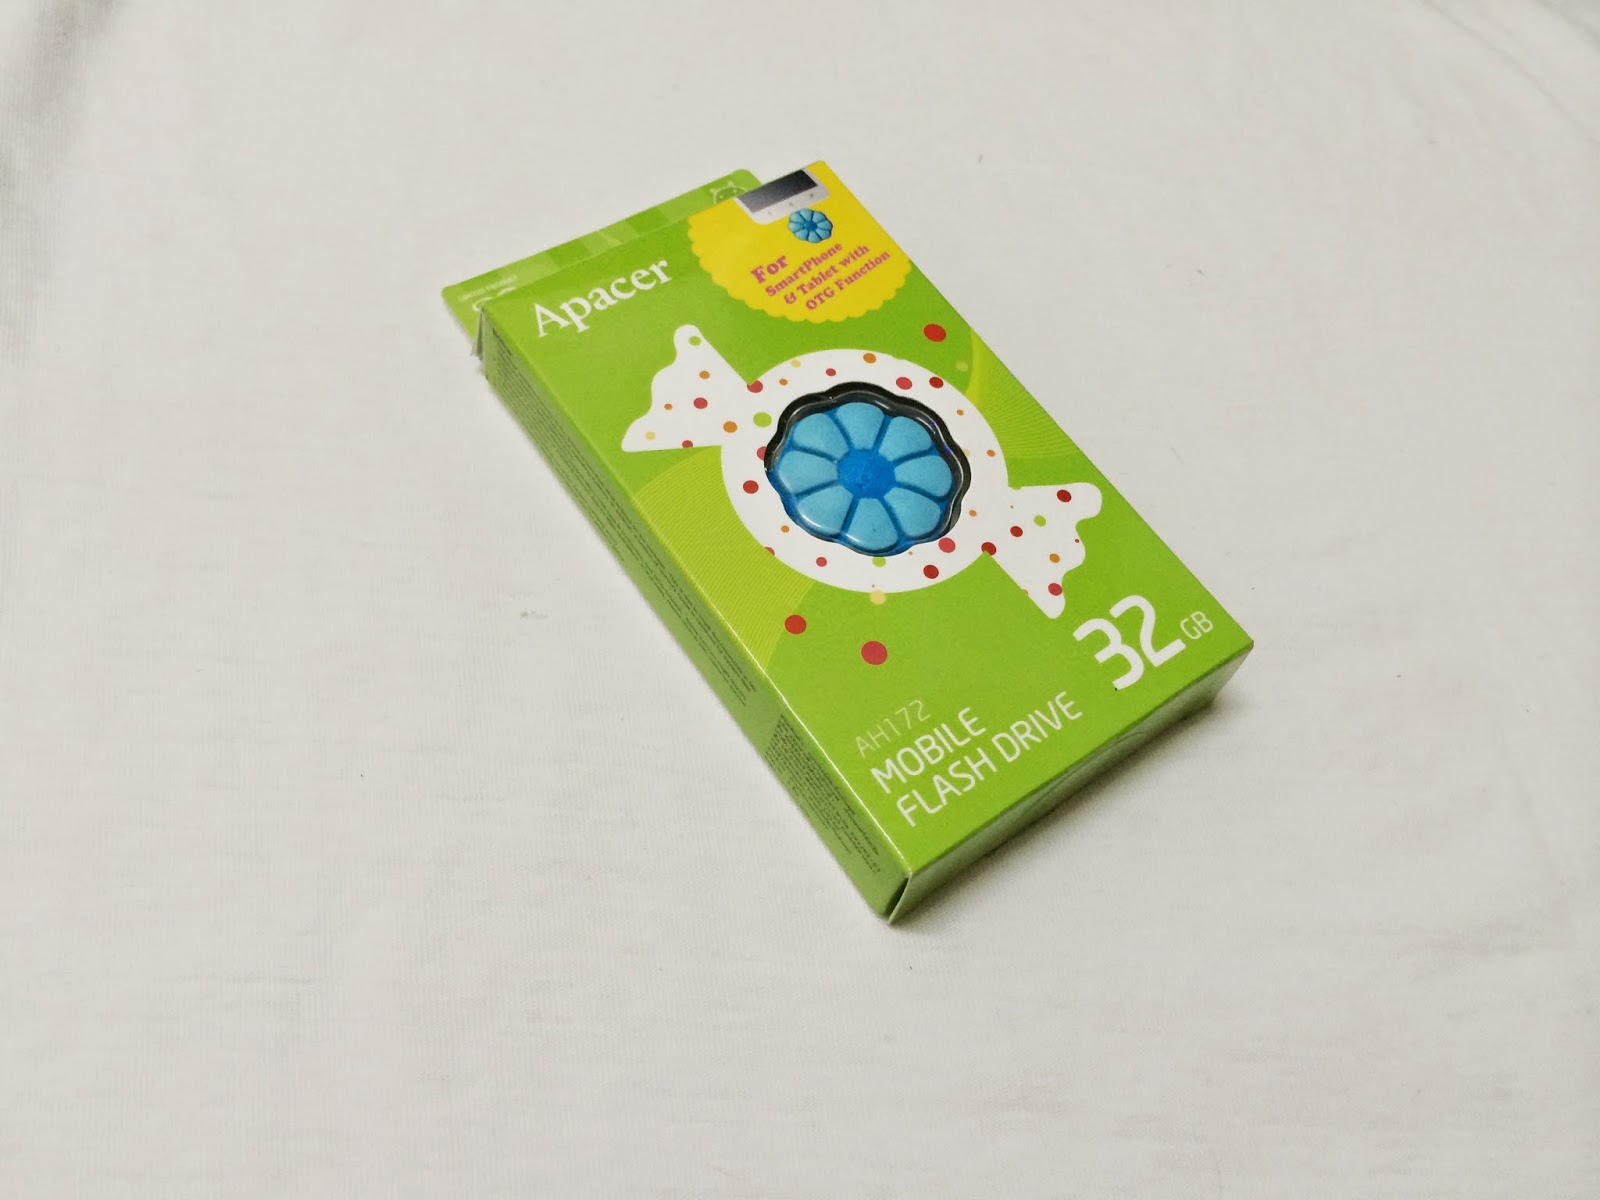 APACER AH 172 FLOWER CANDY Mobile Flash Drives OTG Review 18